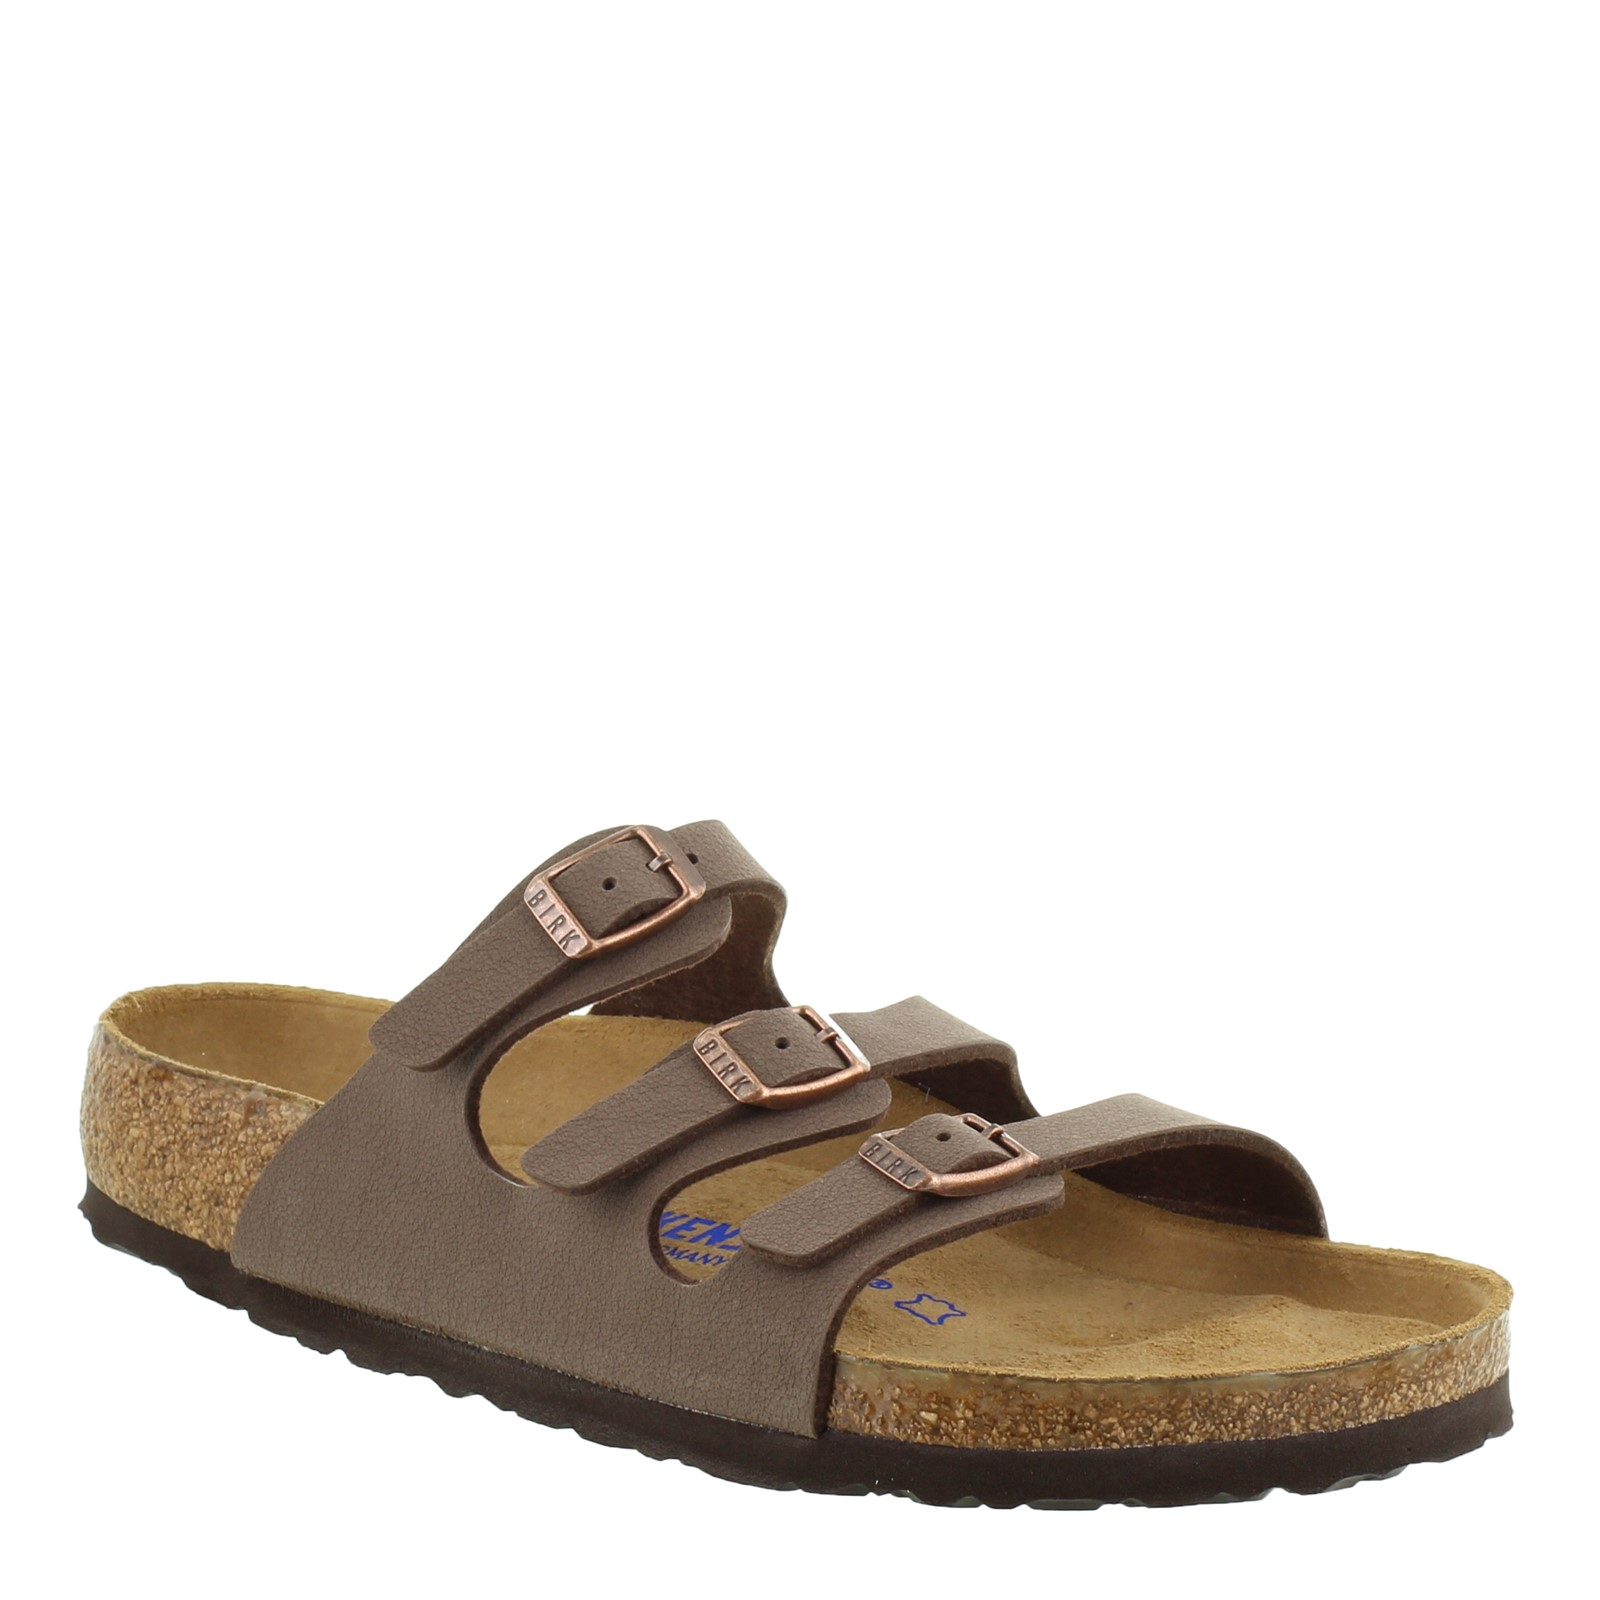 0319c5c65be Women s Birkenstock